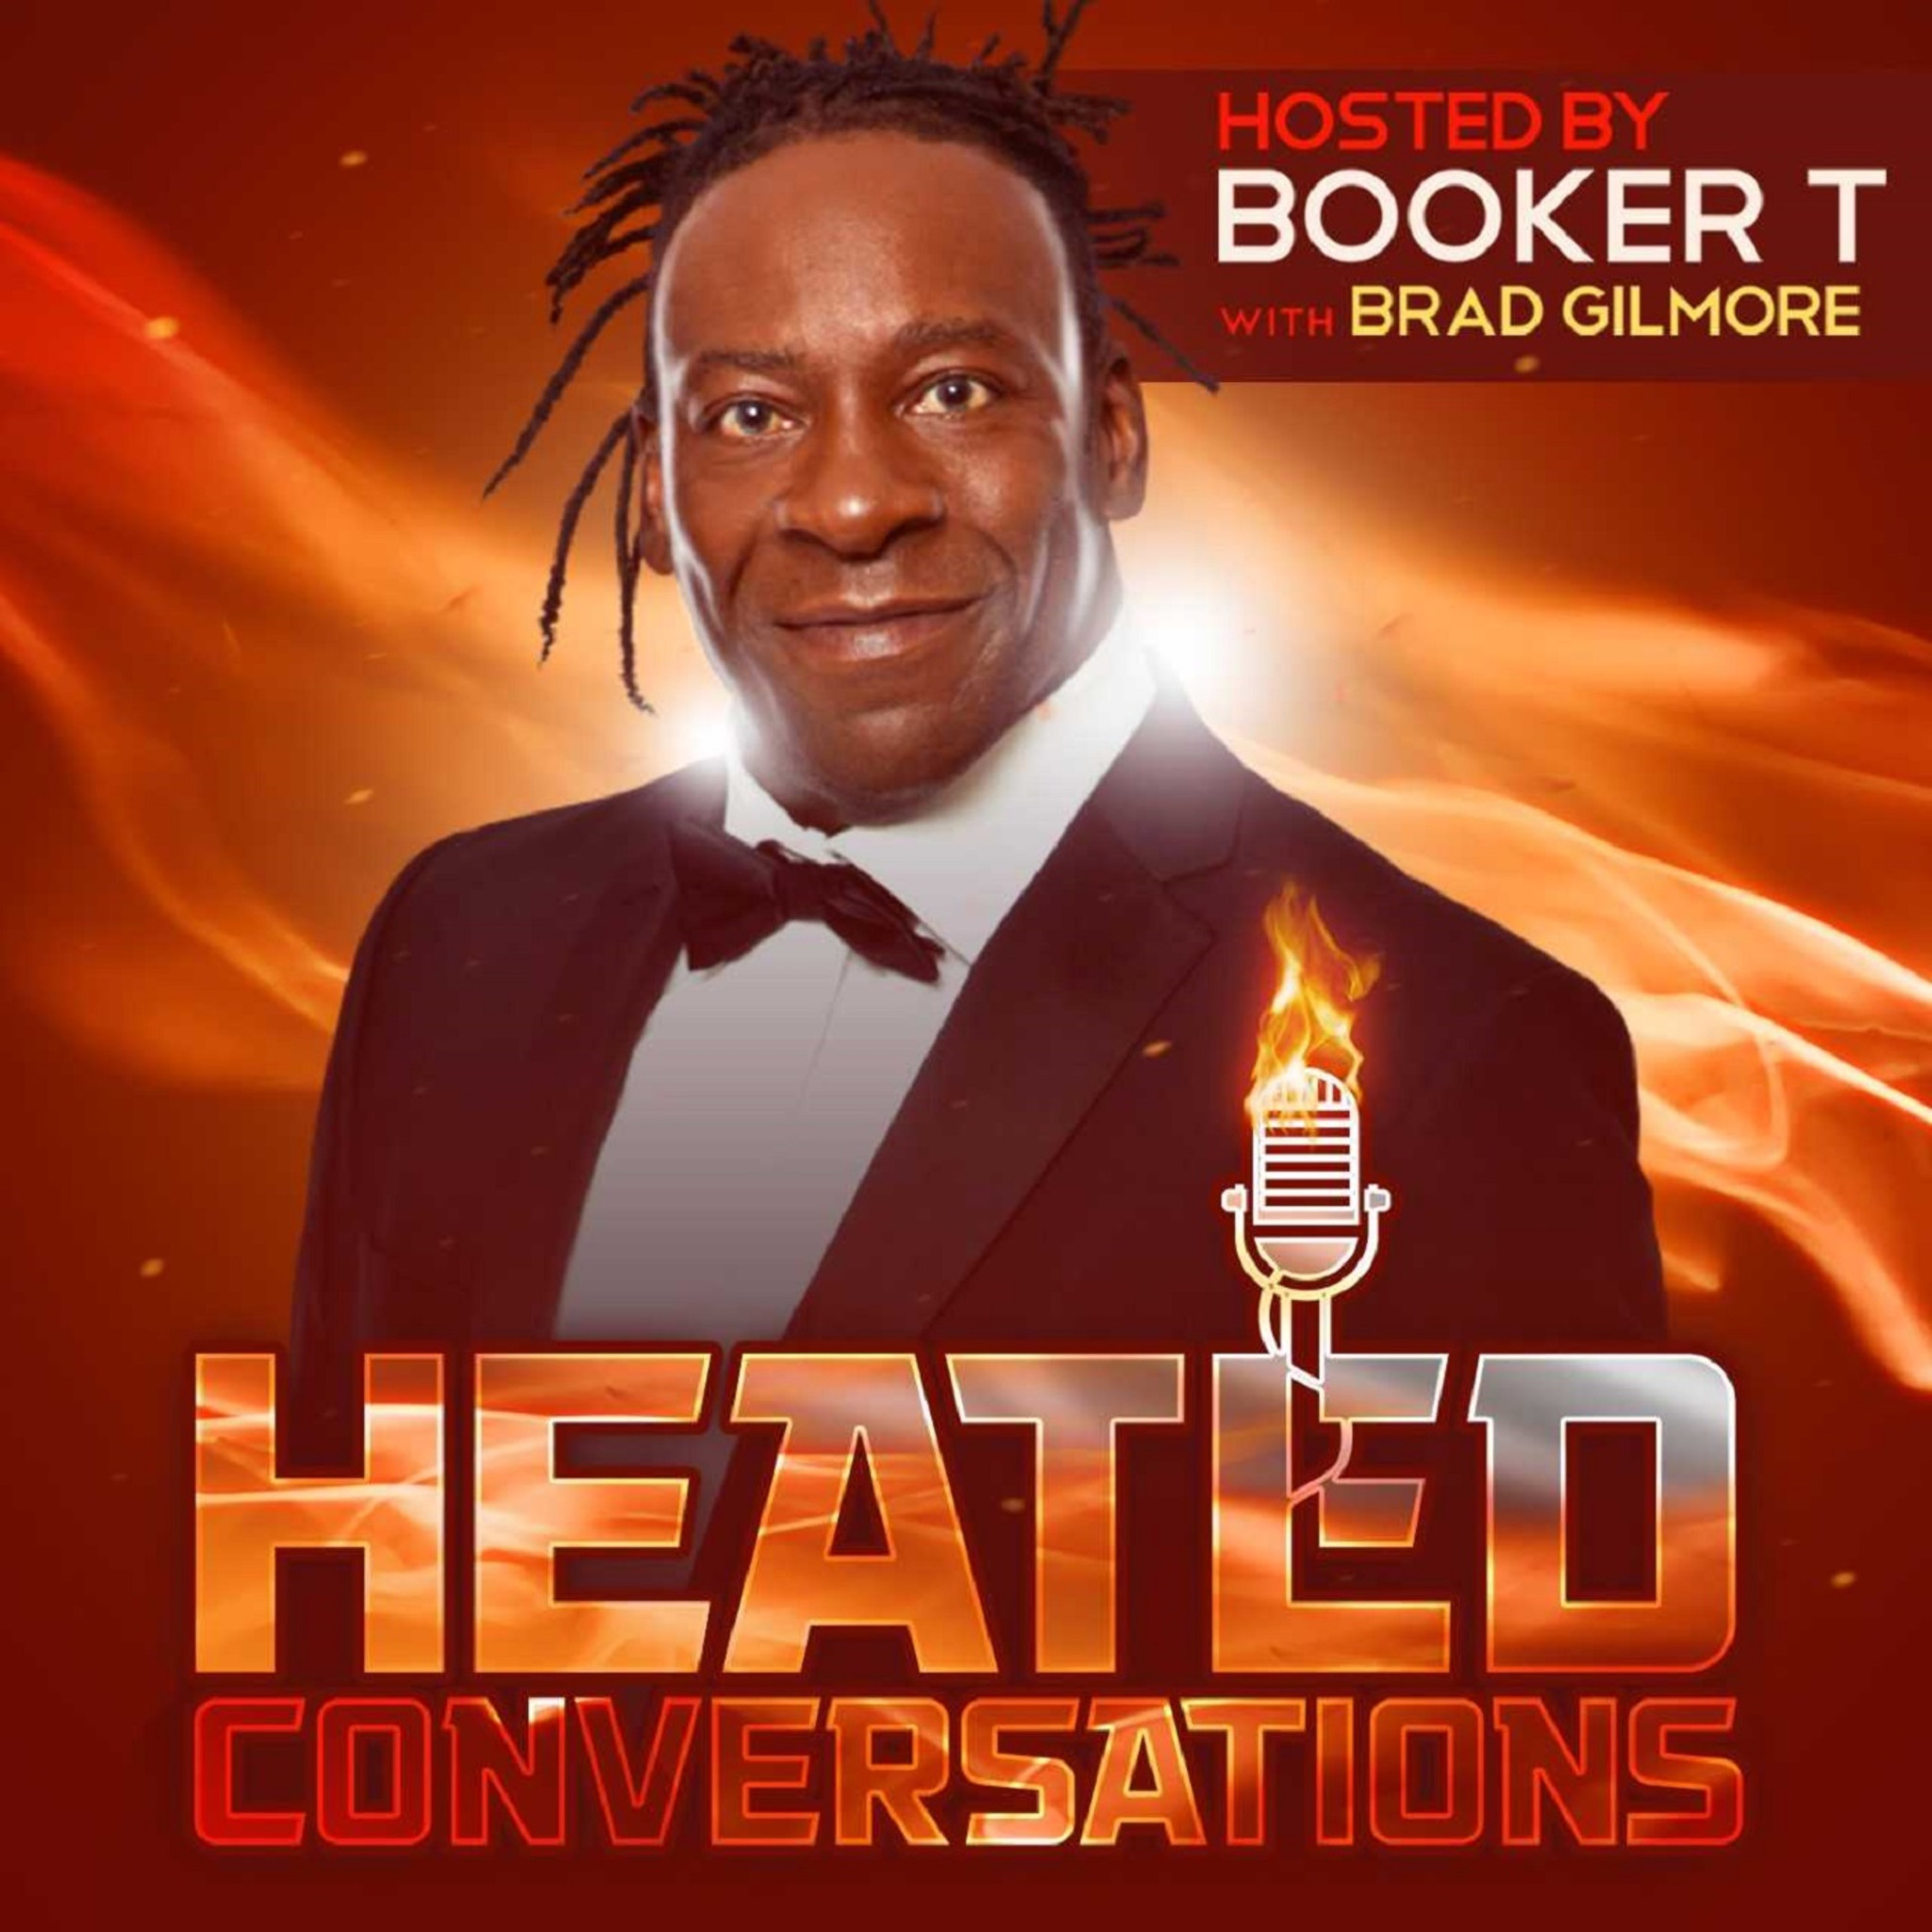 Cbs houston heated conversations hosted by booker t dailygadgetfo Images